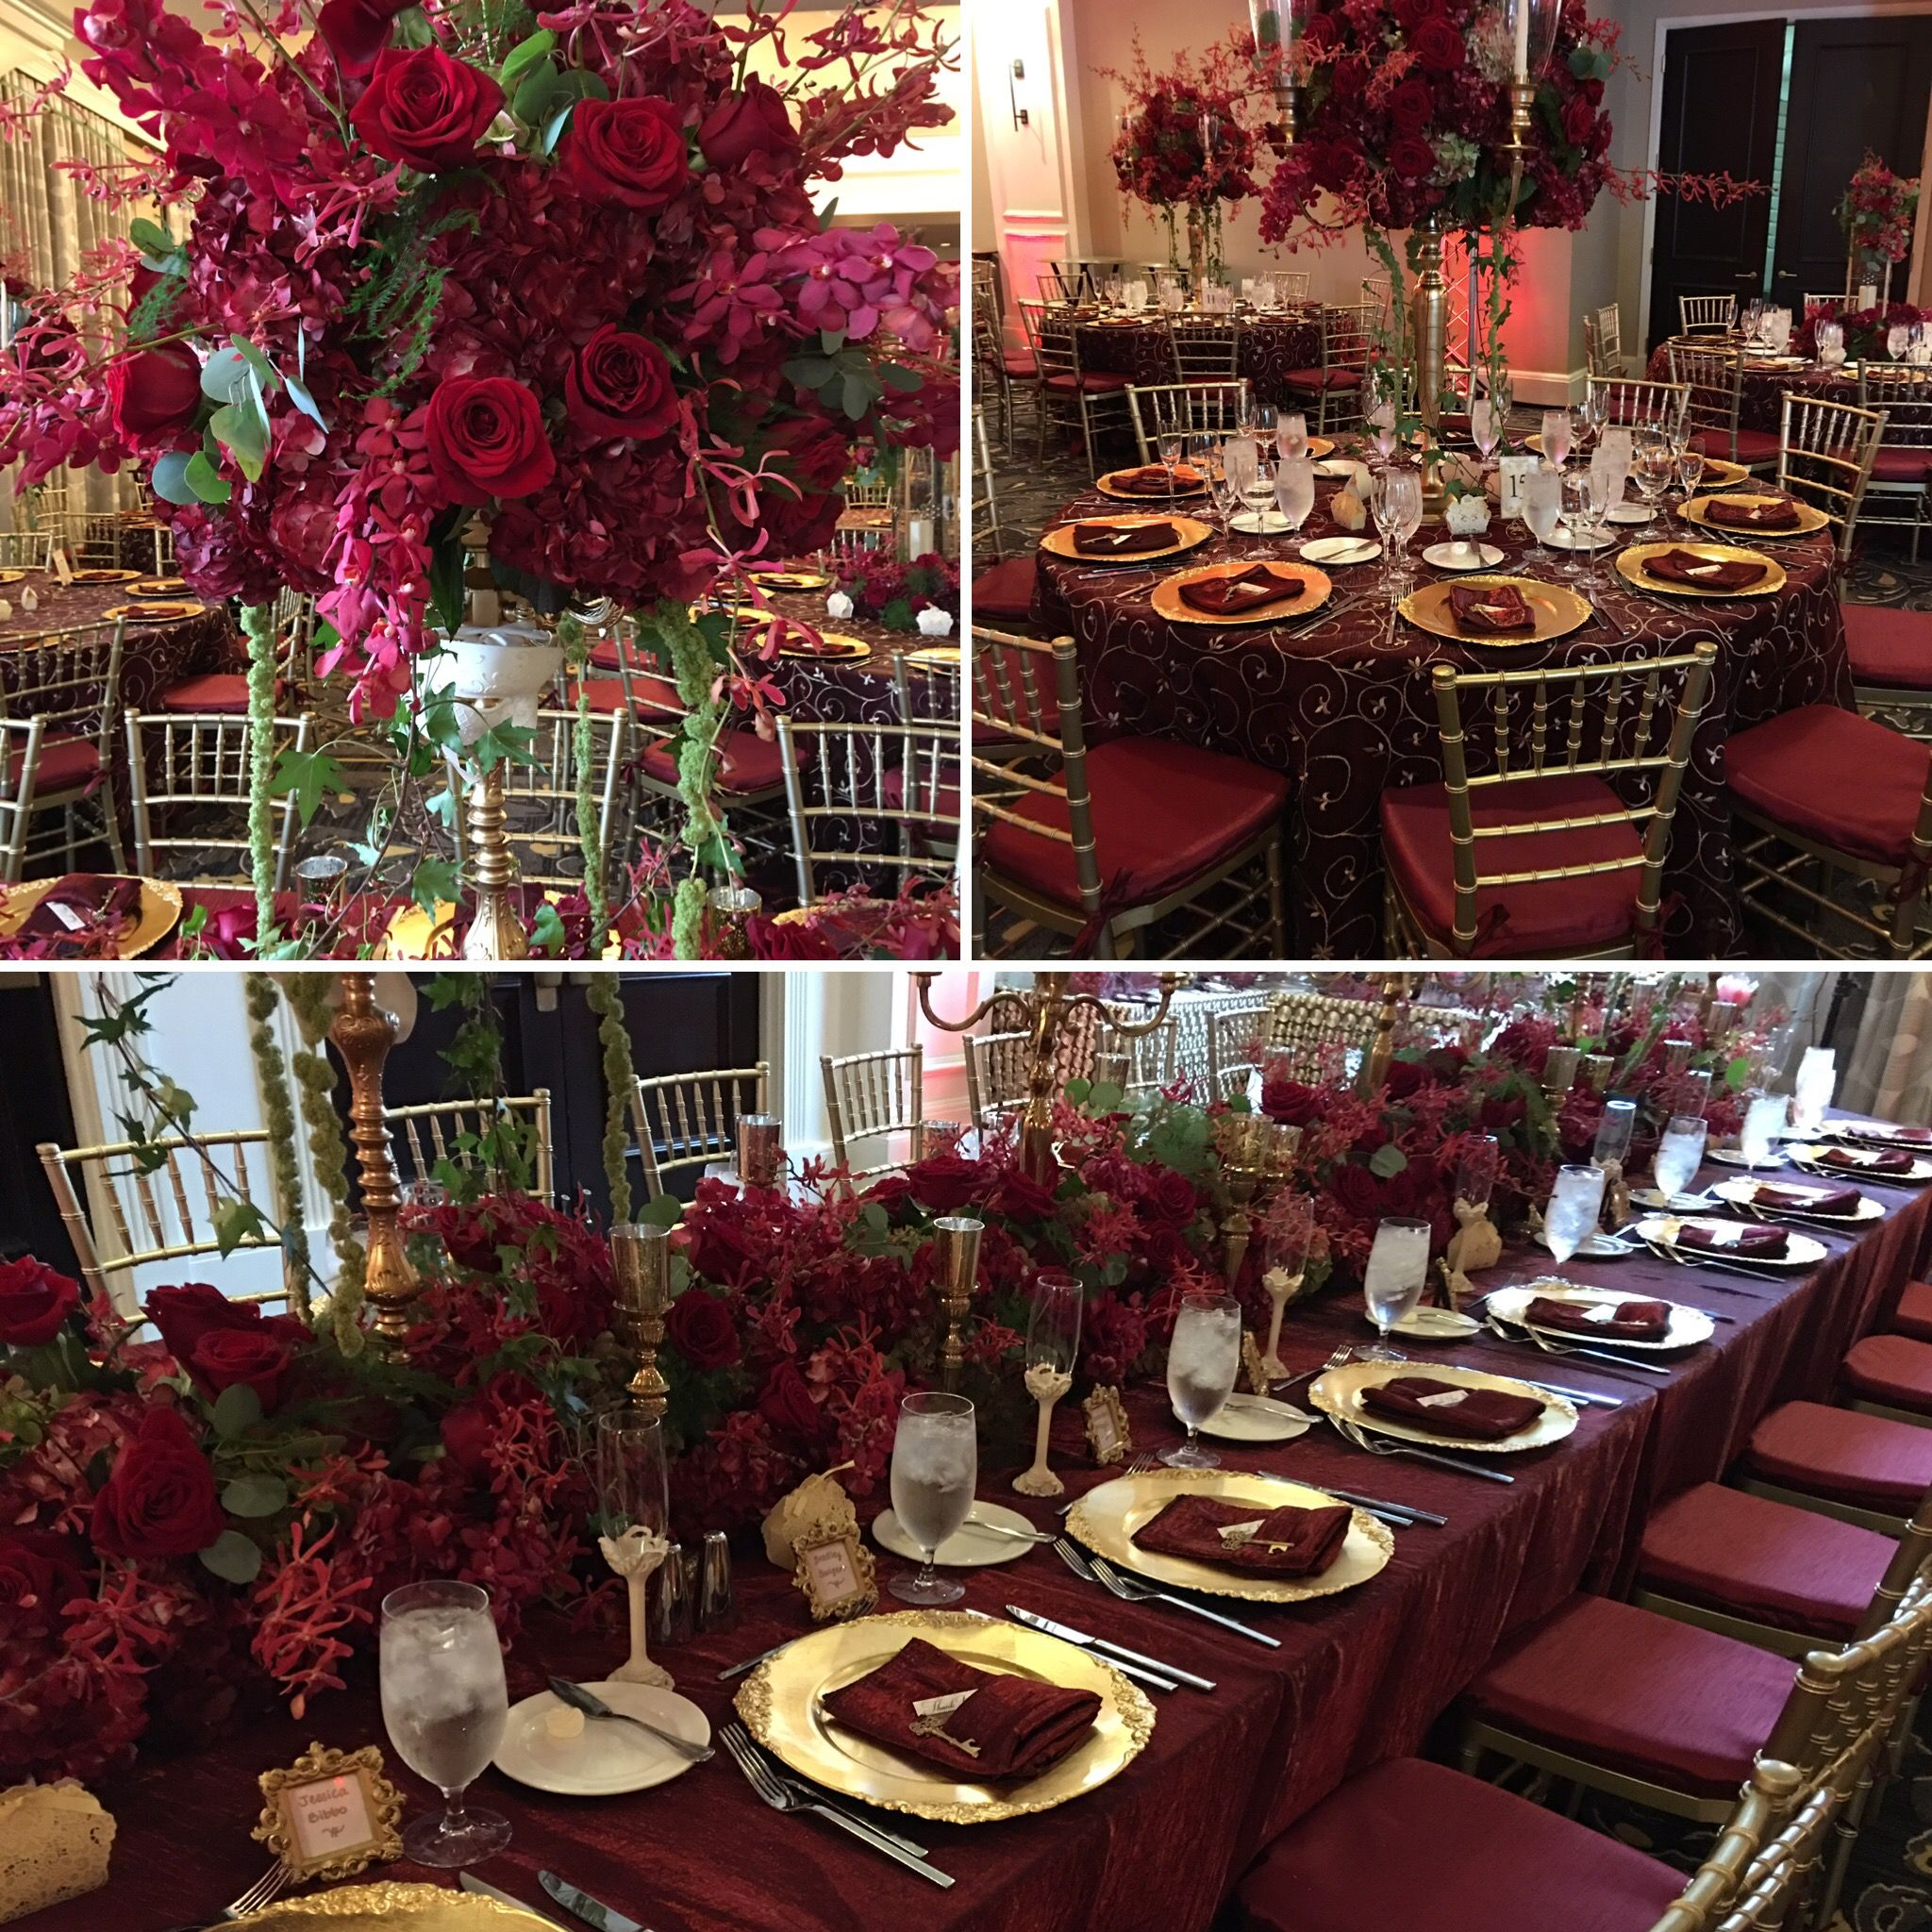 Burgundy floral decor for a phantom theme bridal or quince